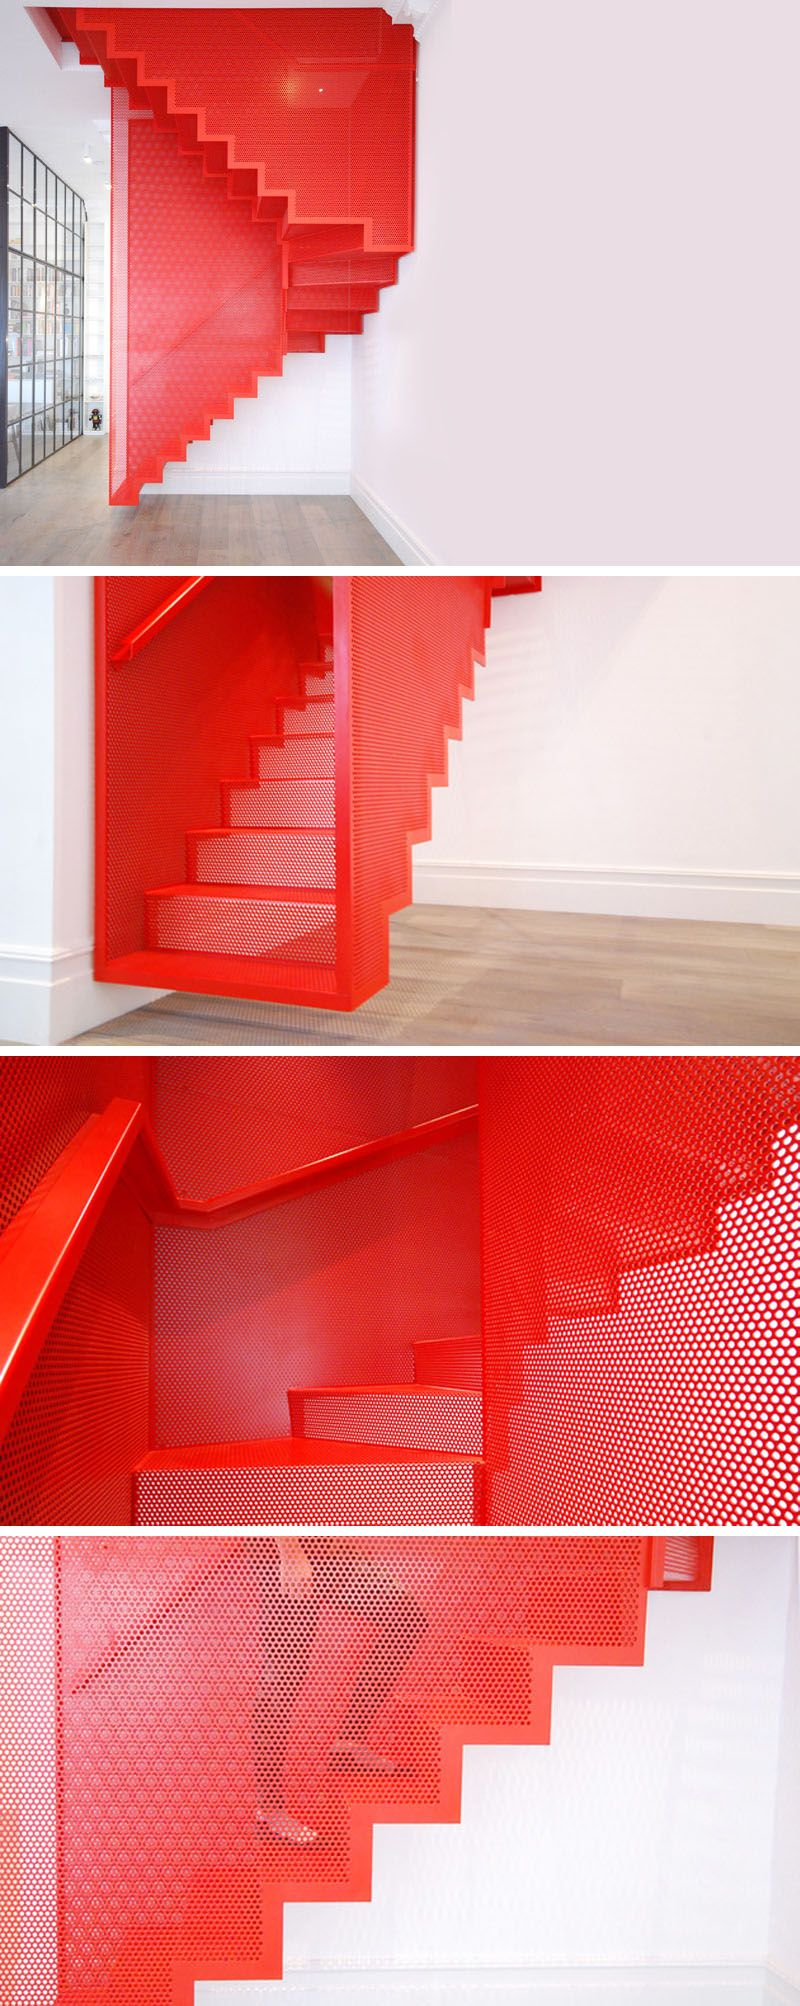 ^ 1000+ ideas about ate Modern Gallery on Pinterest he tate ...